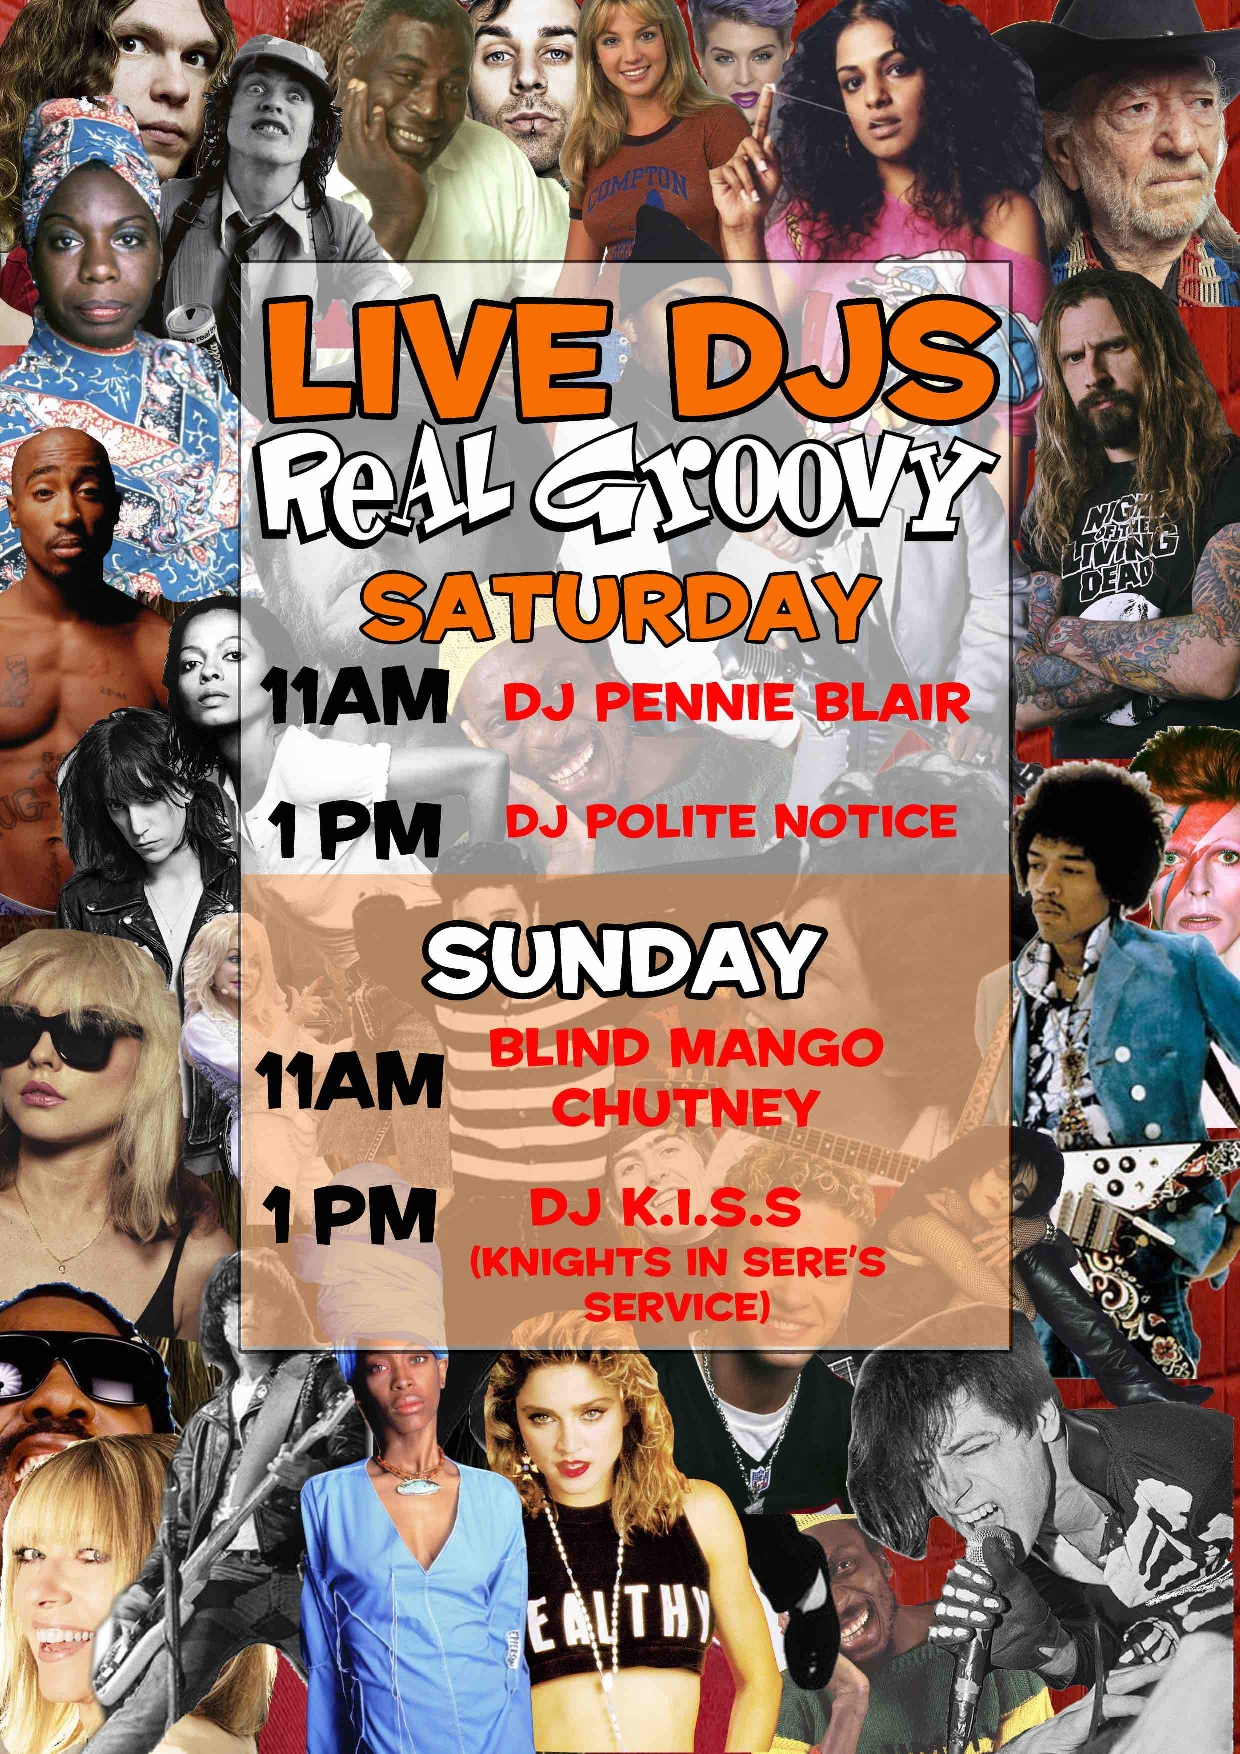 Live DJs At Real Groovy: Pennie Black and DJ Polite Noice